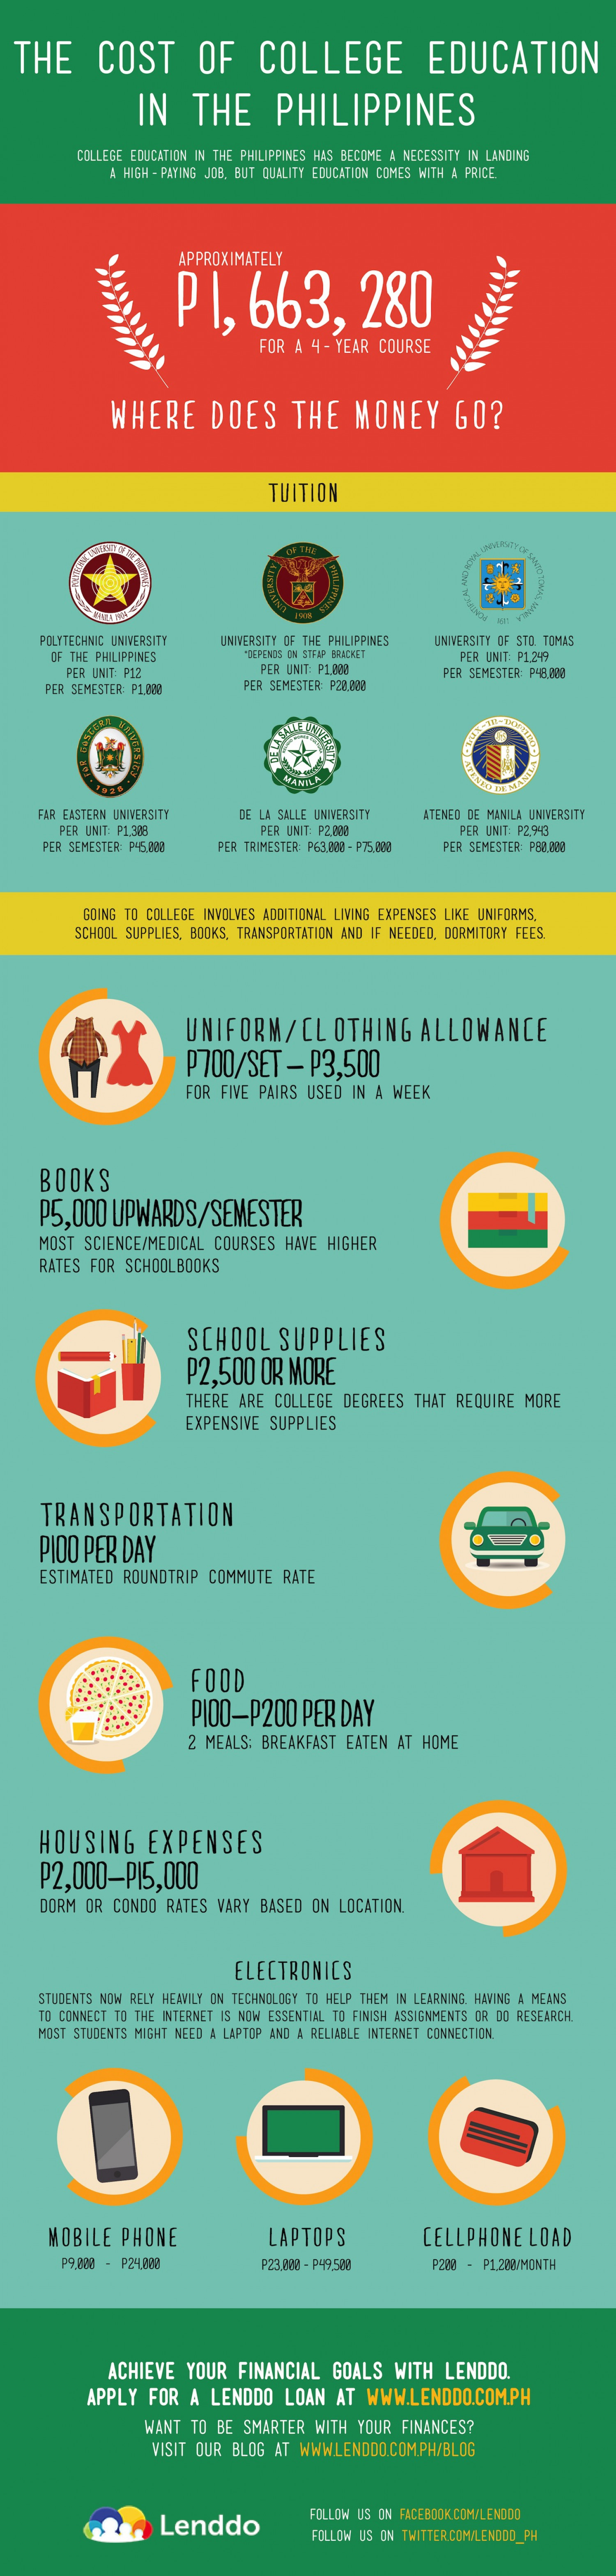 The Cost of College Education in the Philippines Infographic